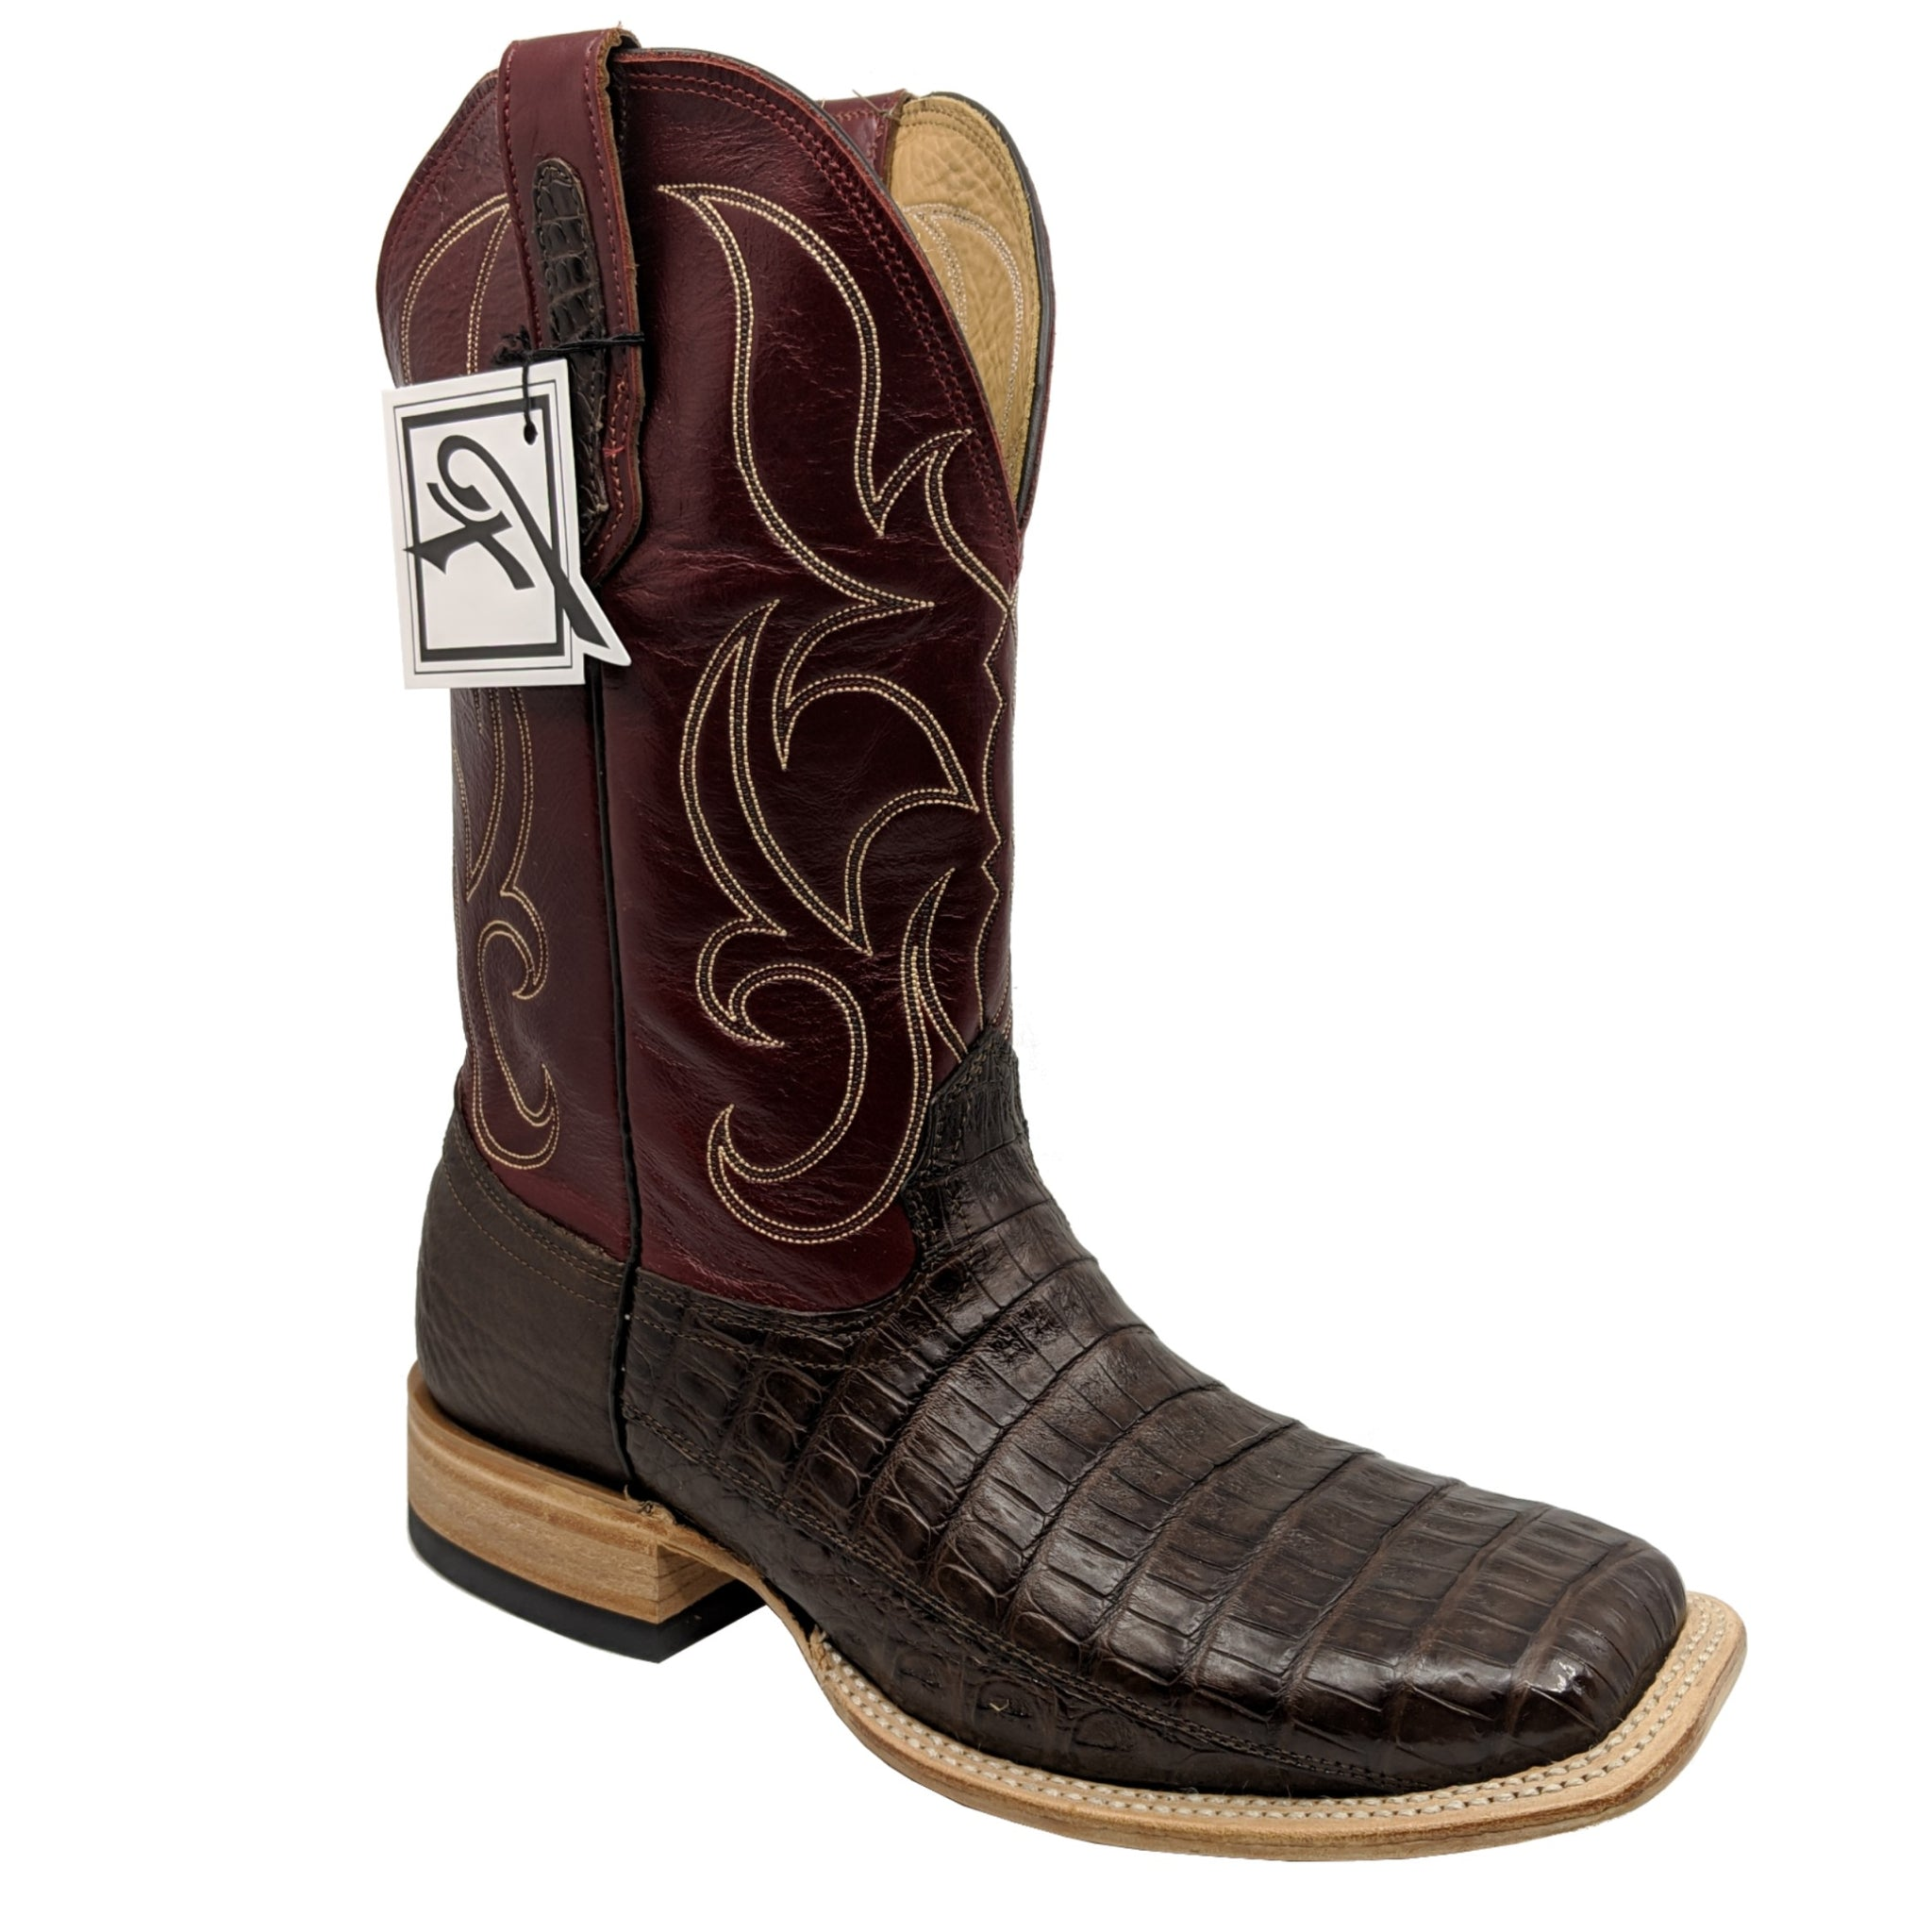 Fenoglio Chocolate Caiman Belly Boots